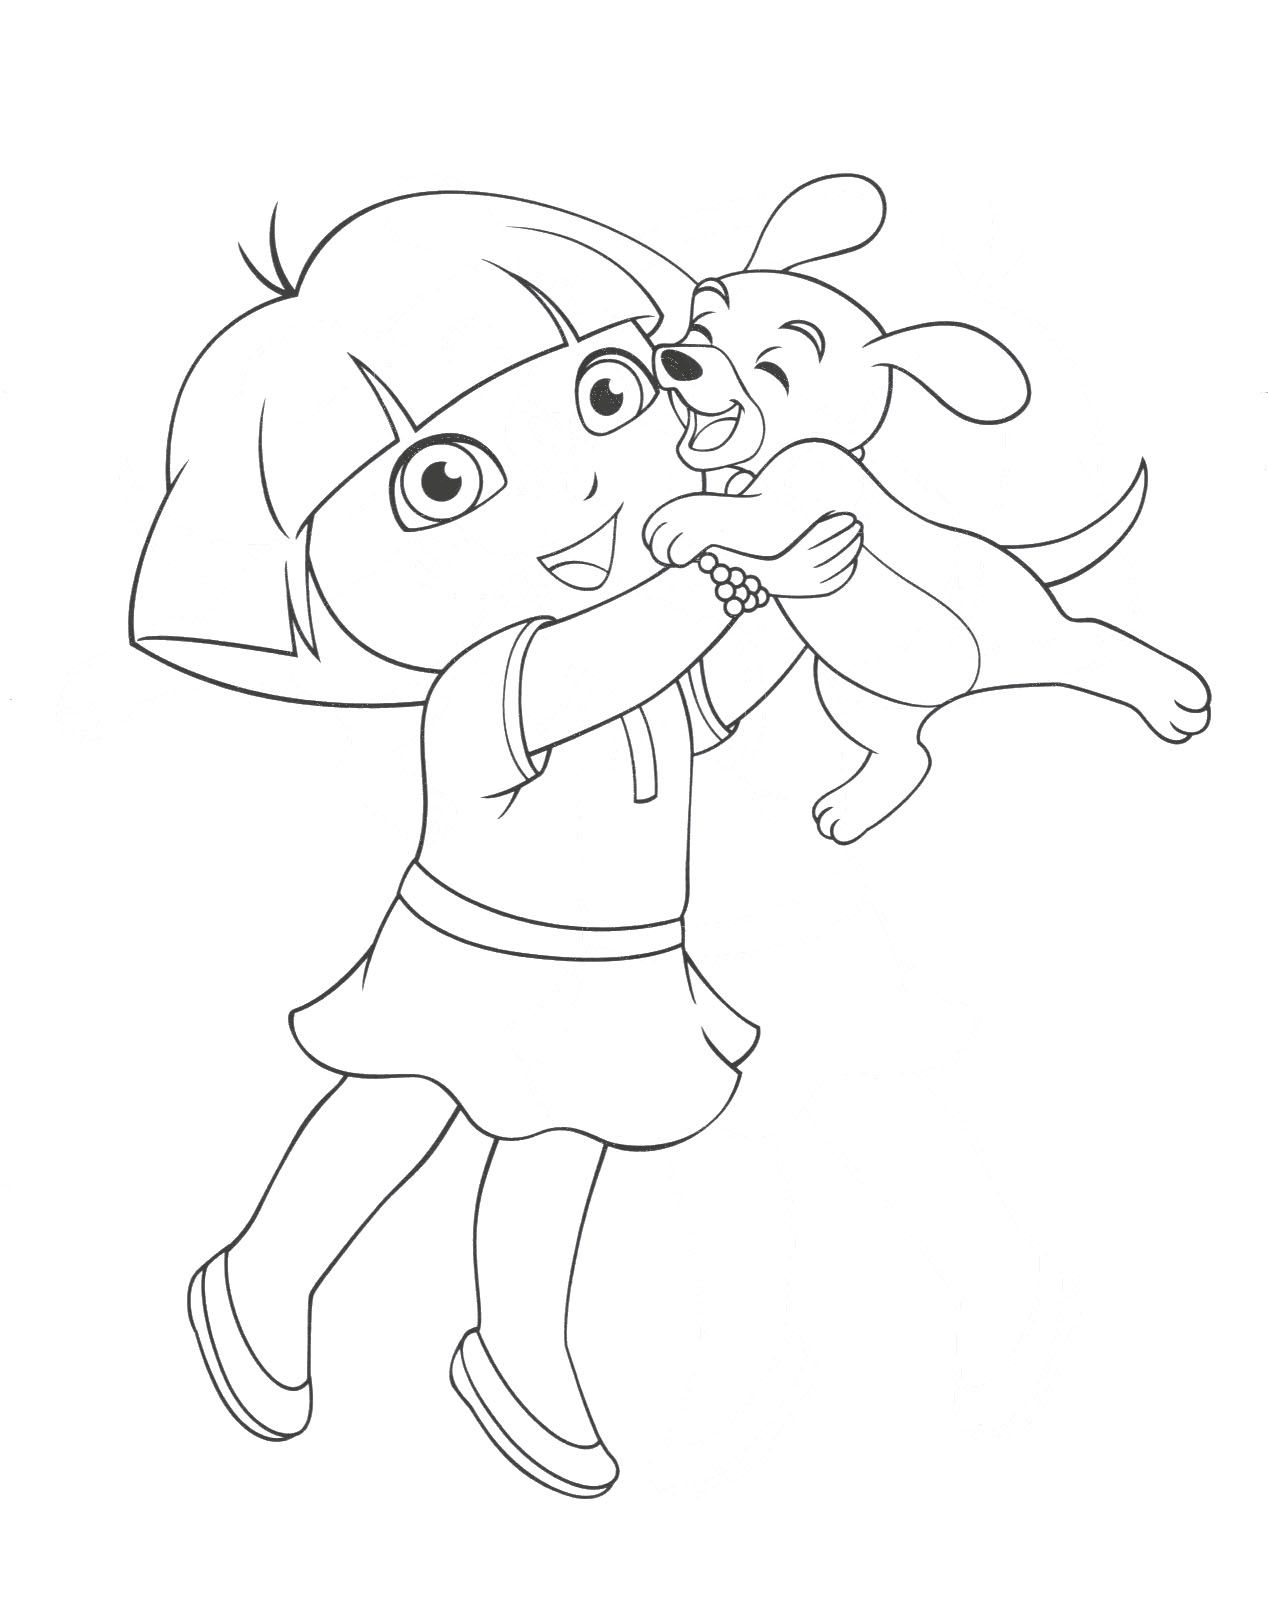 Dora Was Playing With Pet Animals Coloring Page Dora Coloring